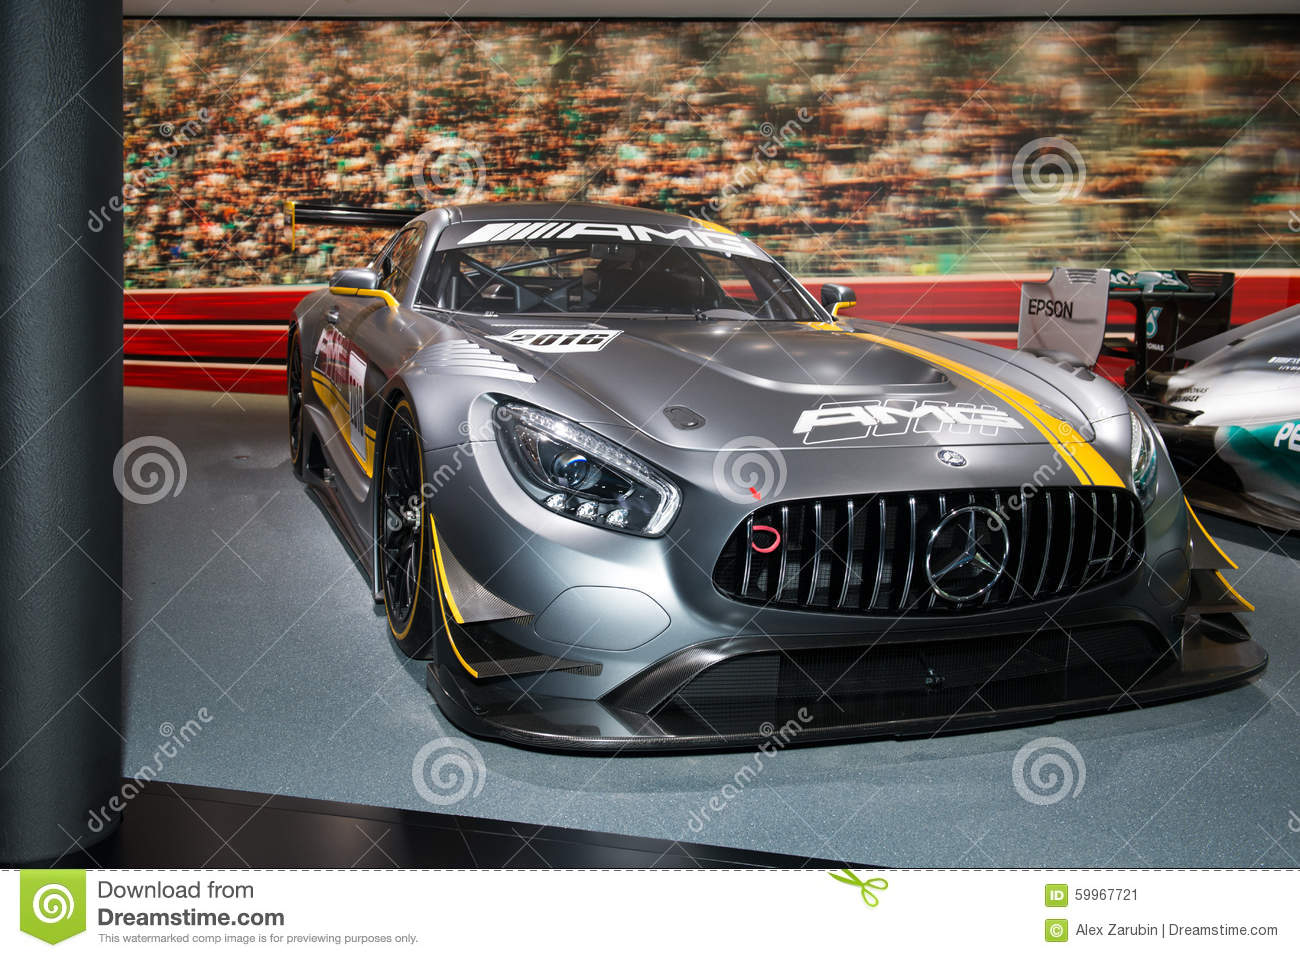 Voiture de course de mercedes amg photo ditorial image du principal sport 59967721 - Image voiture de course ...